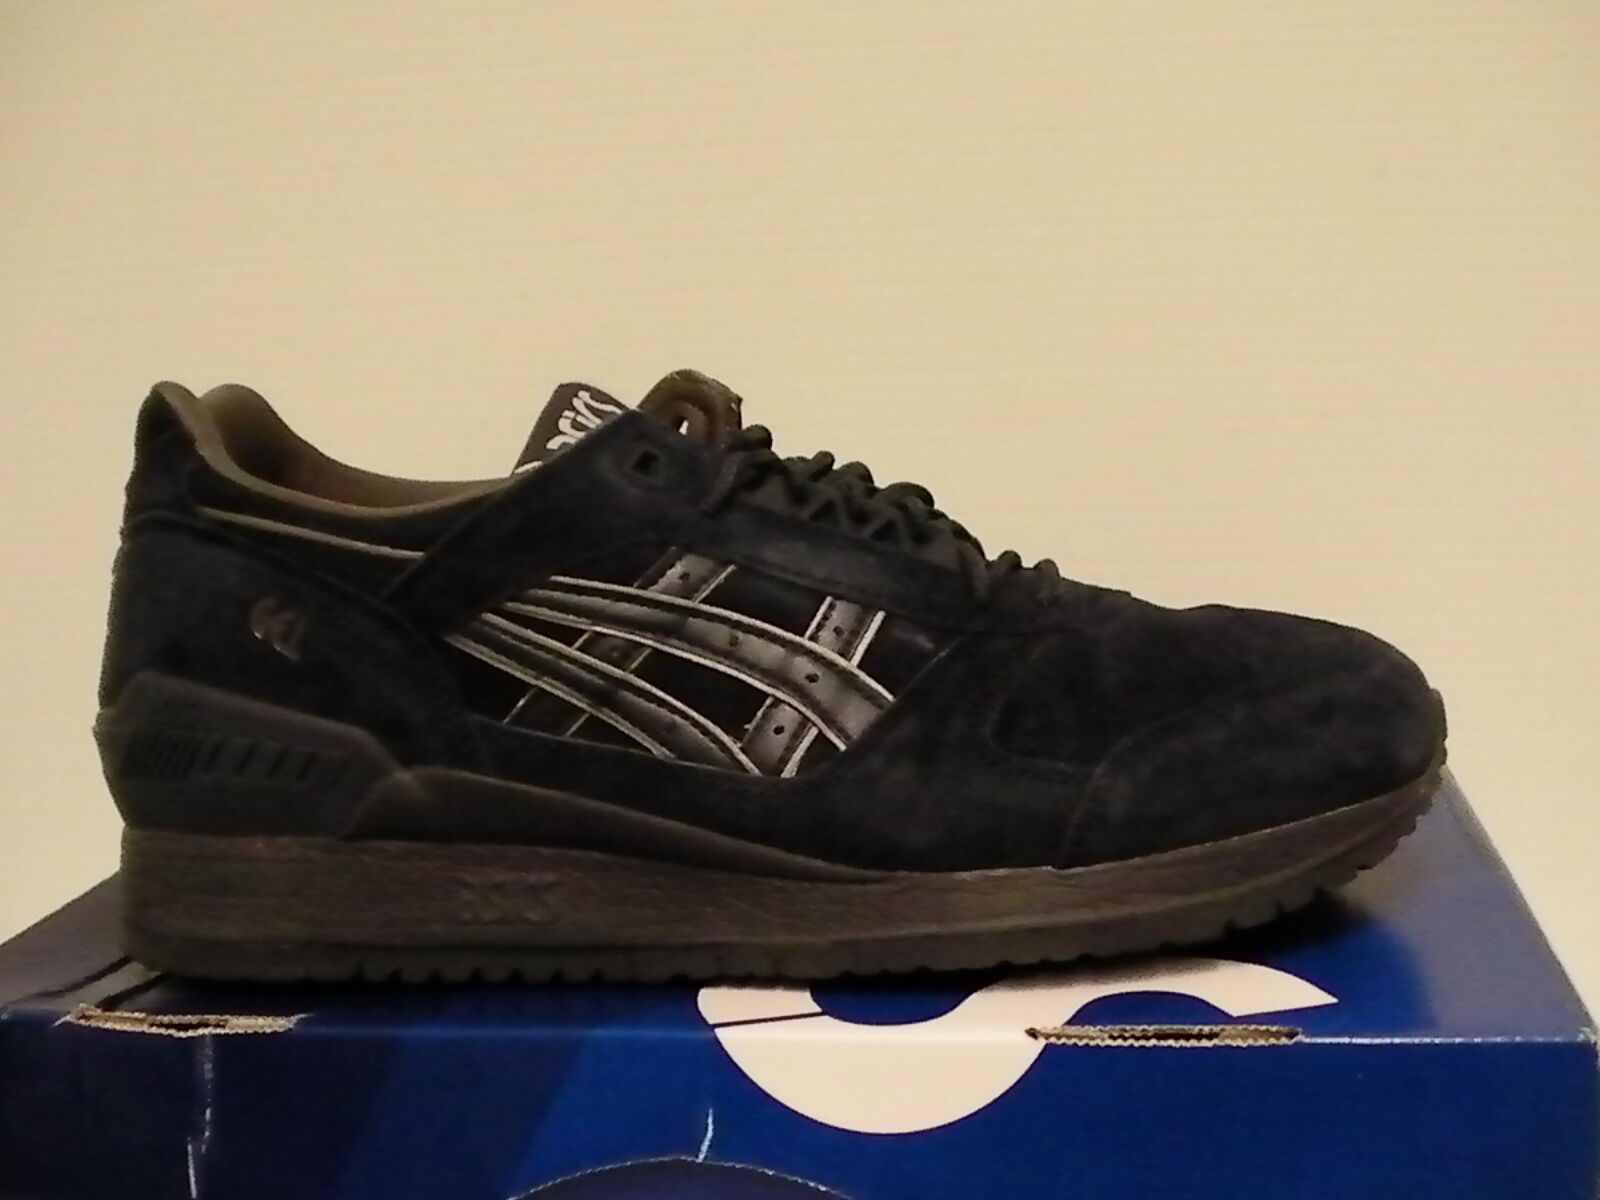 Asics men running shoes gel-lyte iii size 10.5 us indian ink new with box